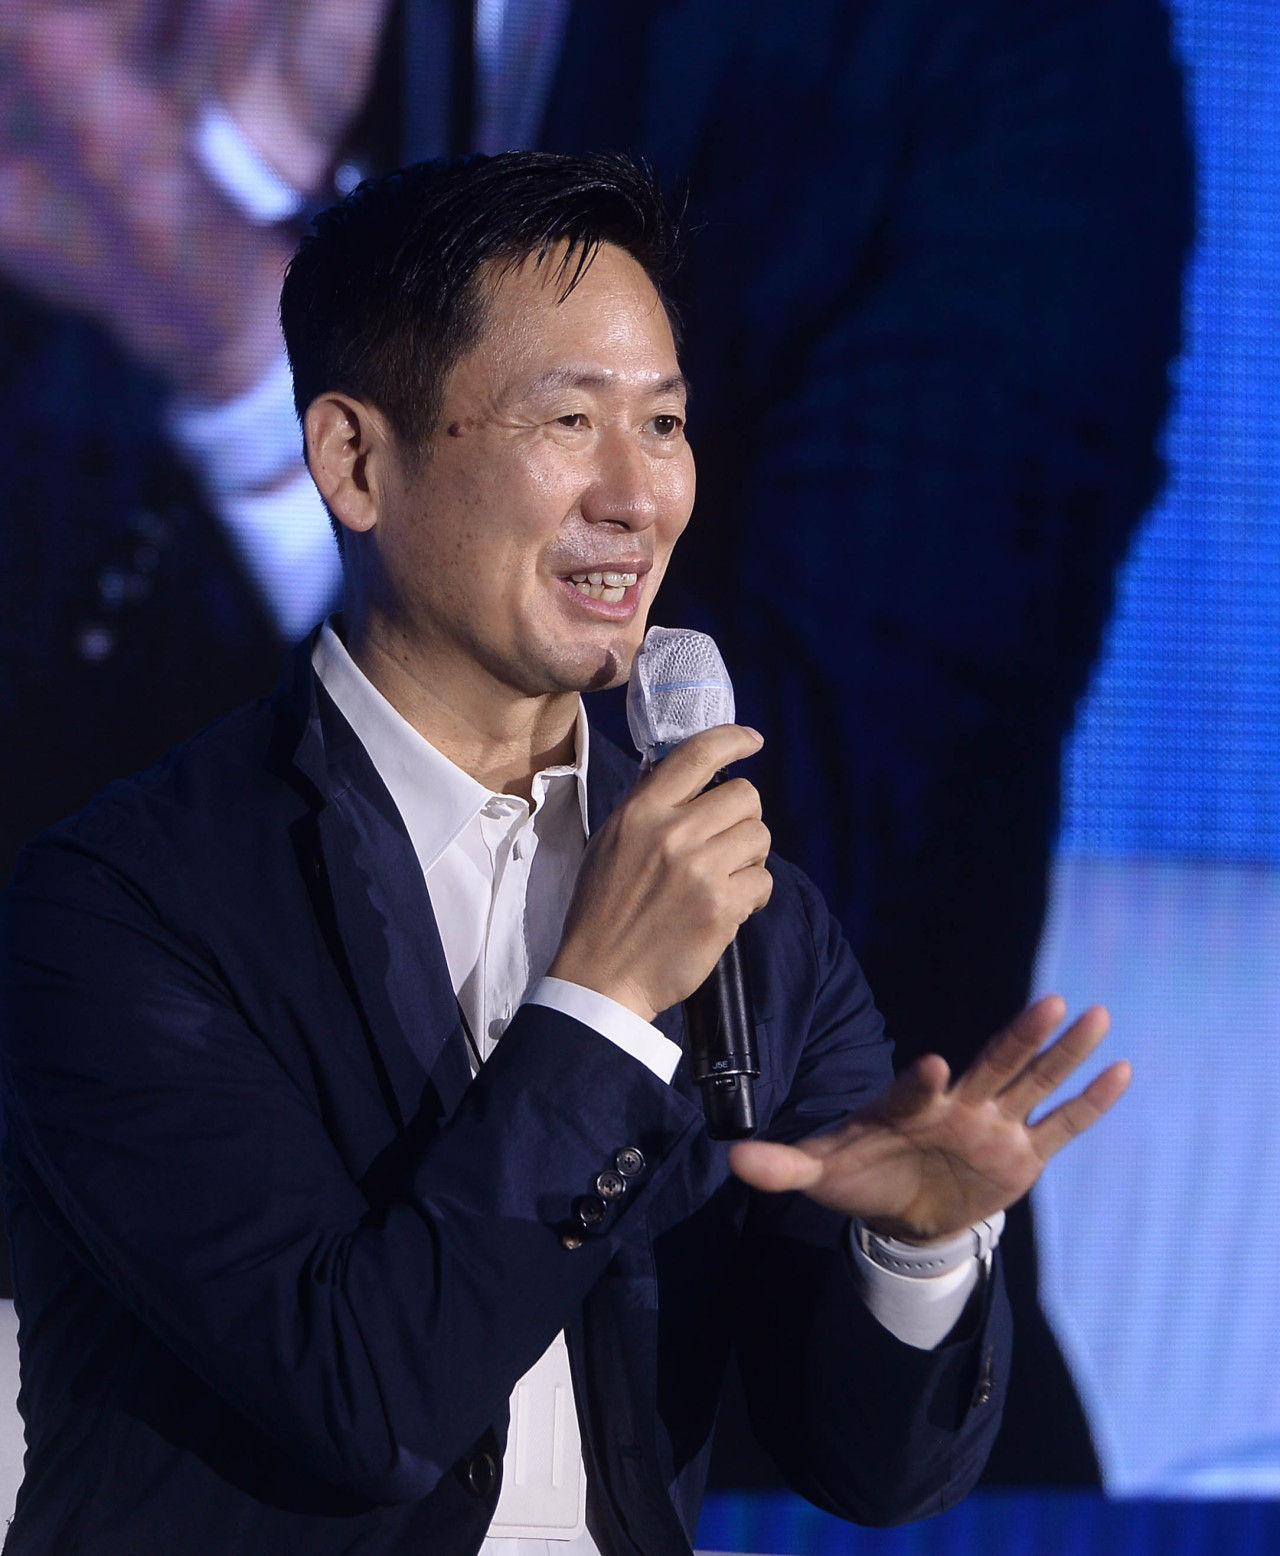 Lee Don-tae, executive vice president and head of Corporate Design Center at Samsung Electronics, is answering questions from the audience at the Herald Design Forum 2021 on Thur.